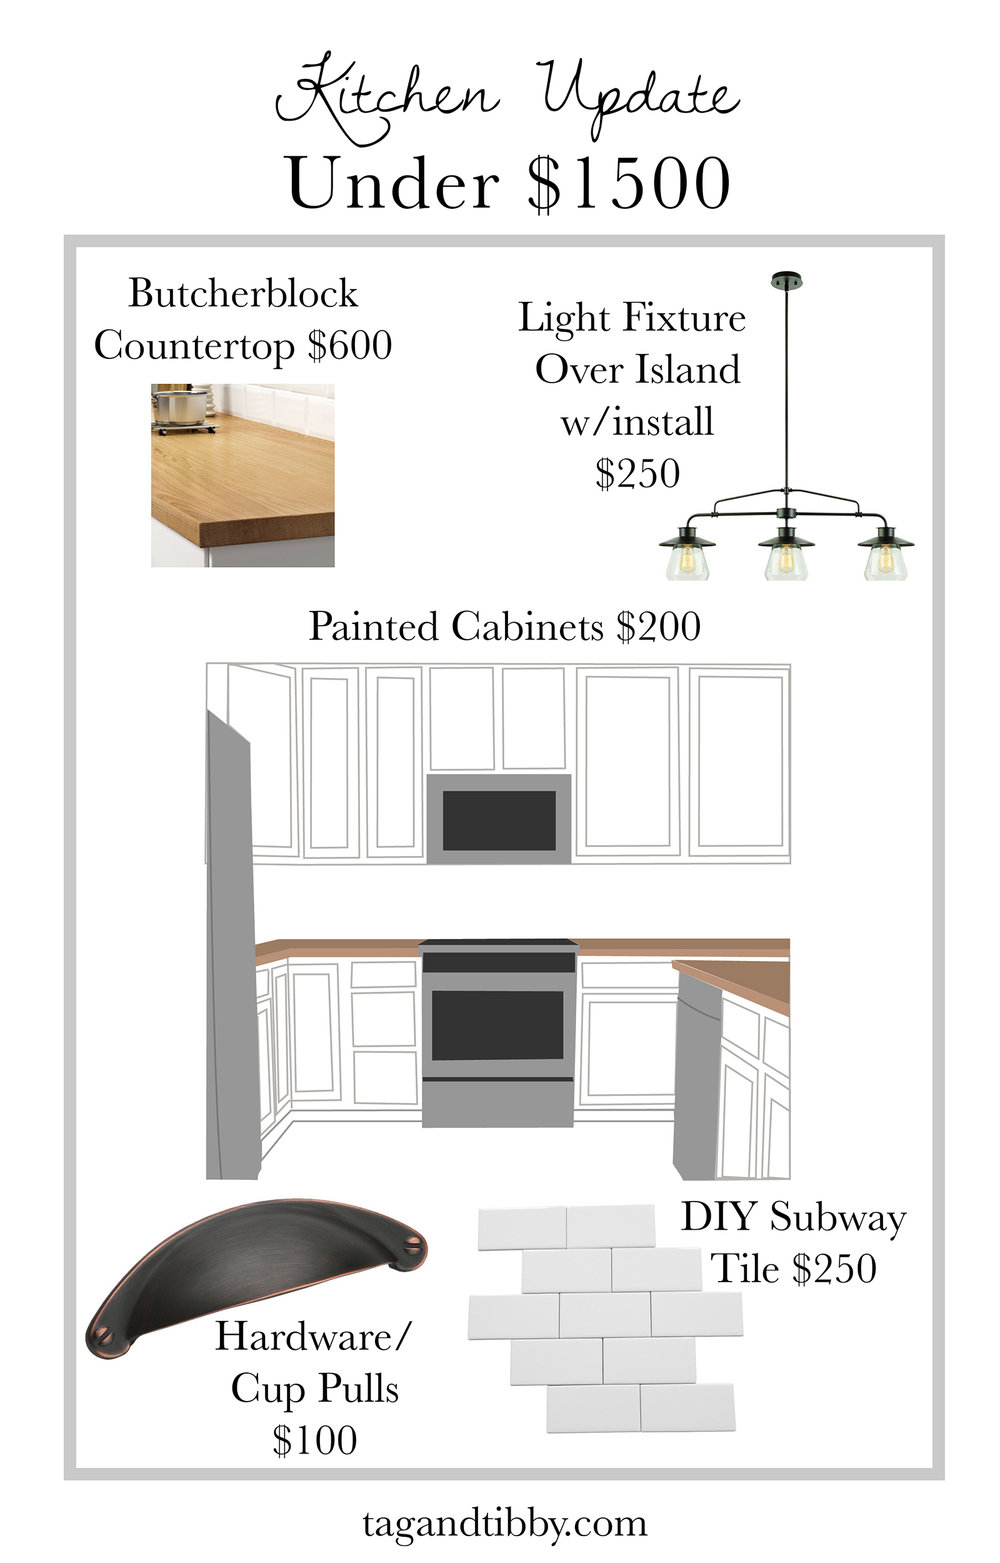 Remodel your kitchen for $1500 with this small budget idea! | Tag & Tibby